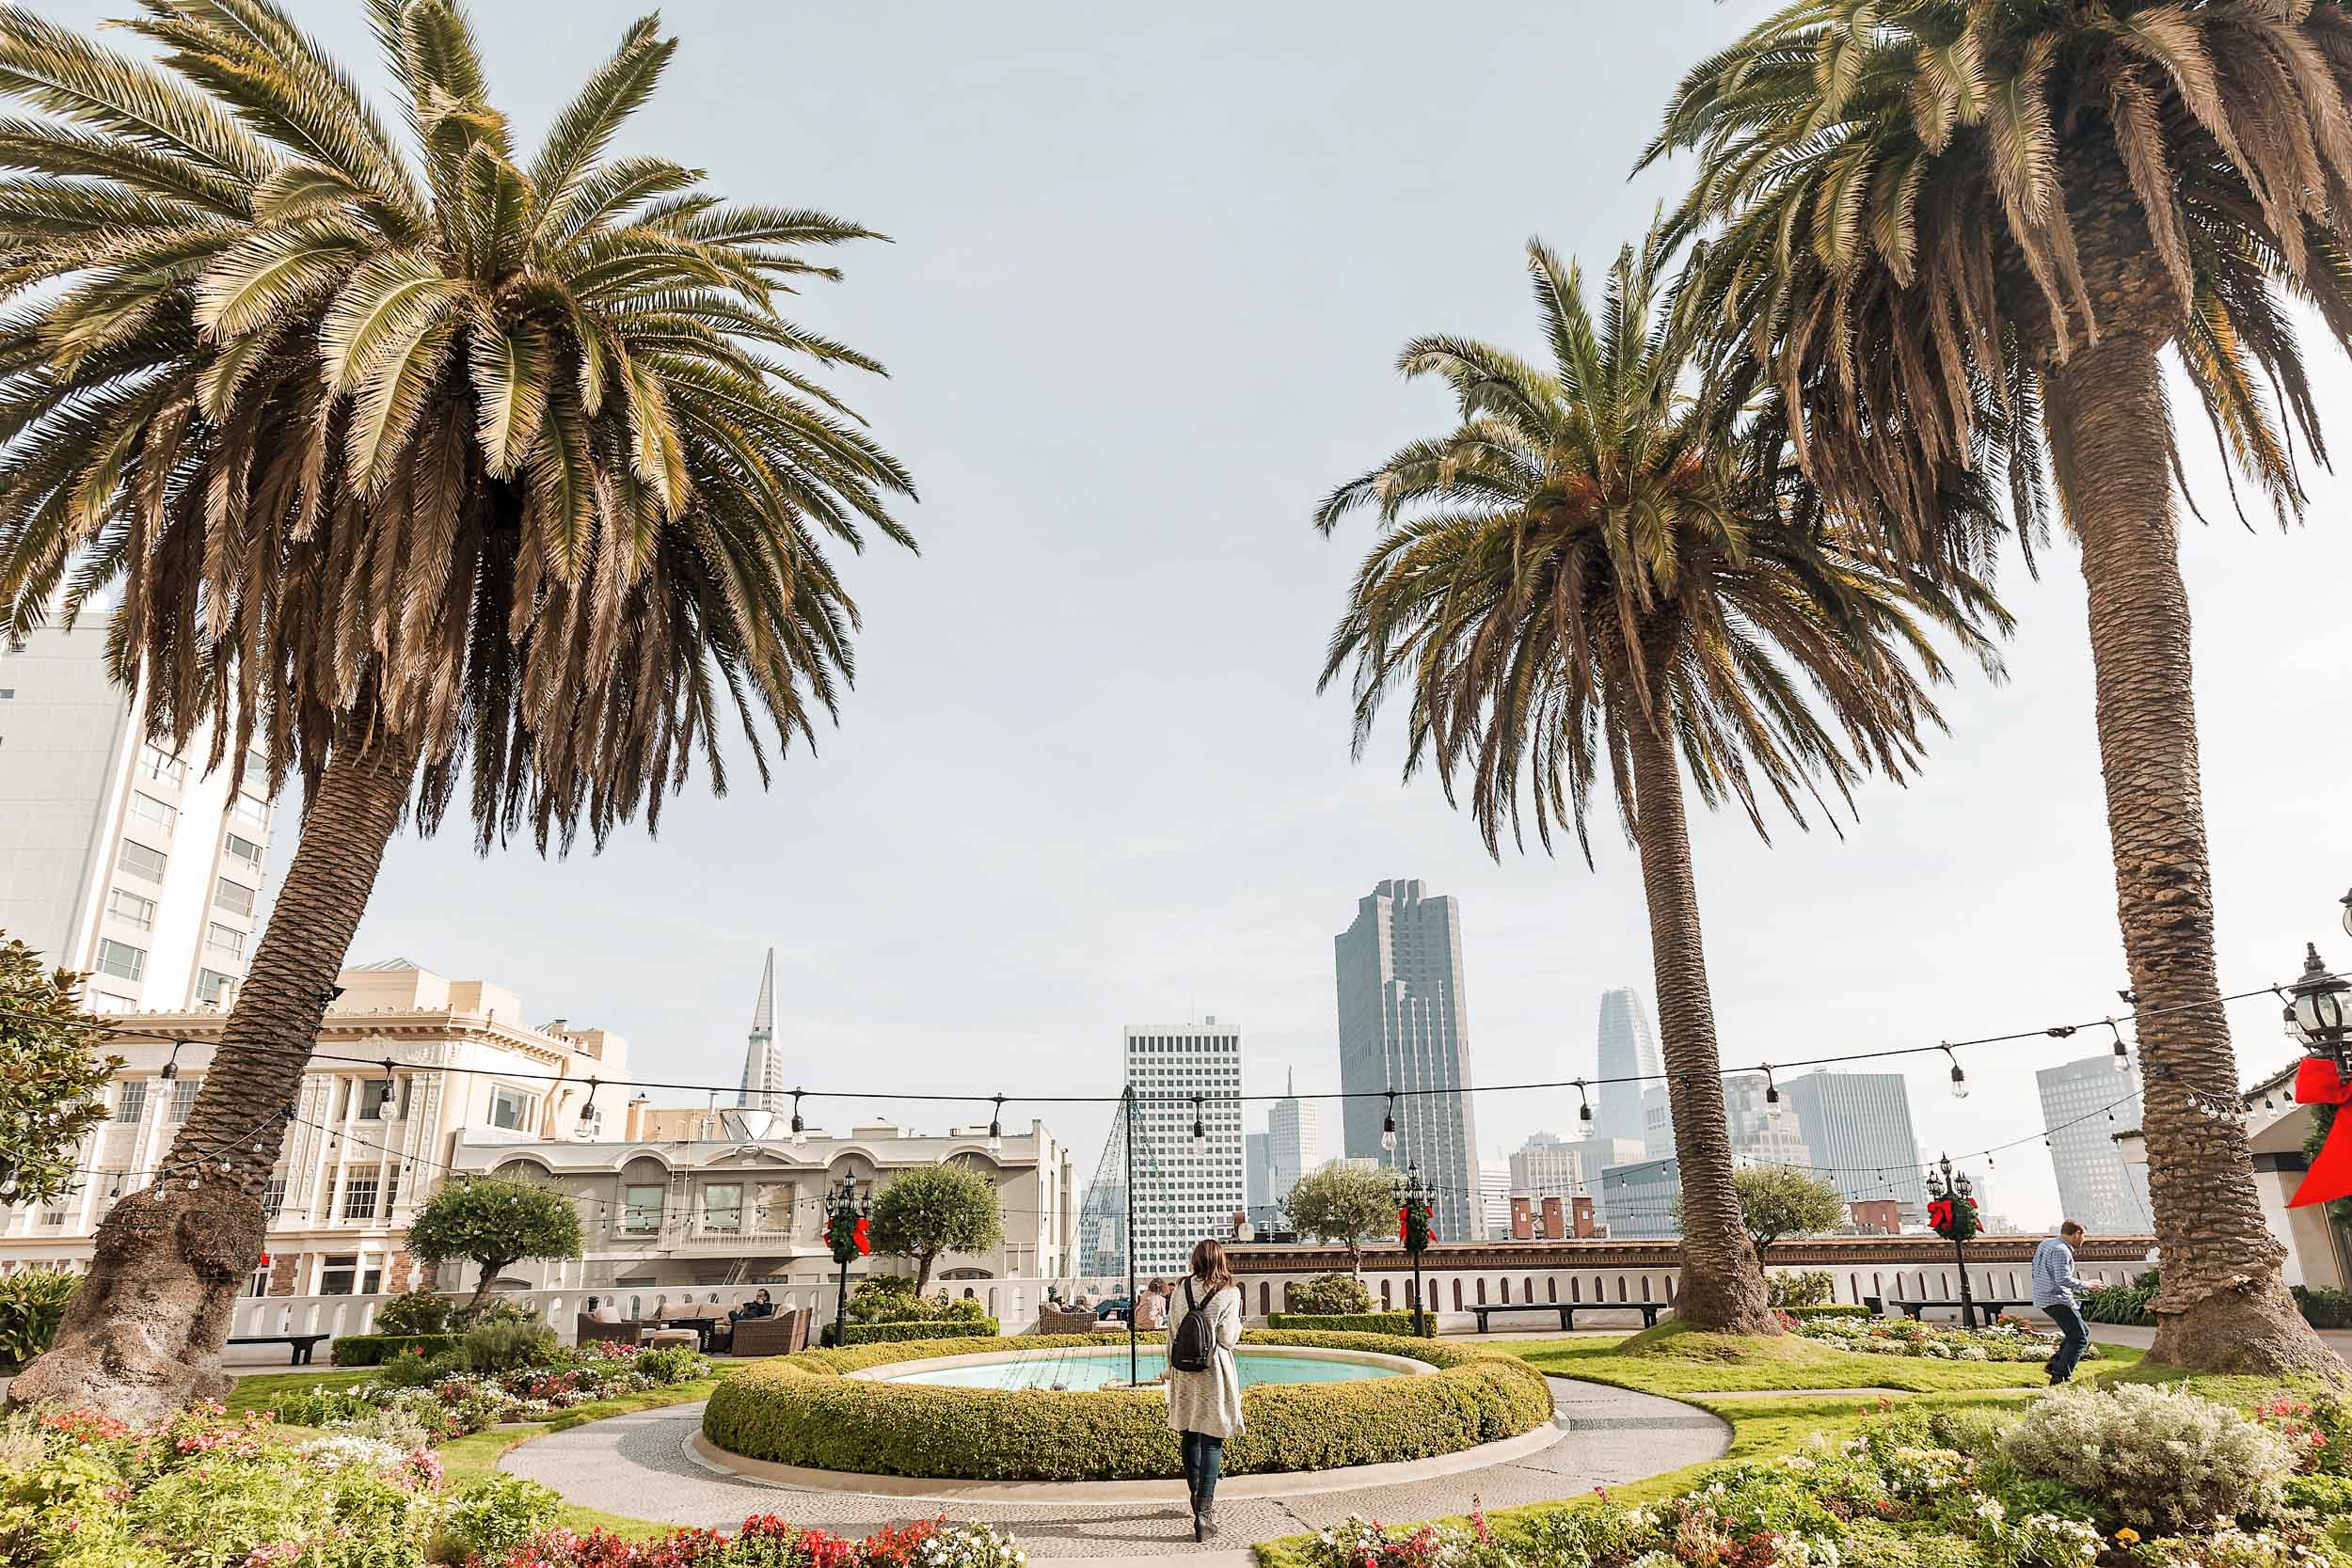 The rooftop garden of the Fairmont San Francisco offers beautiful city views